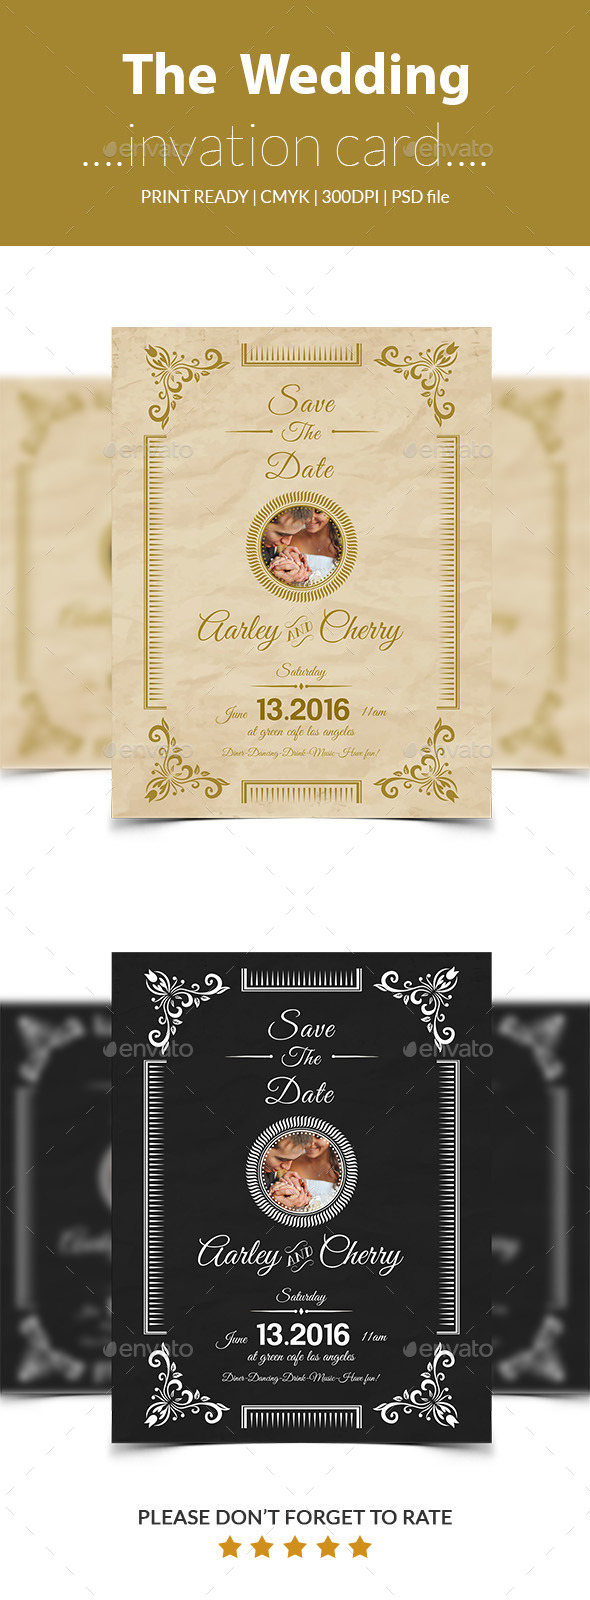 GraphicRiver wedding inviation card 11946870